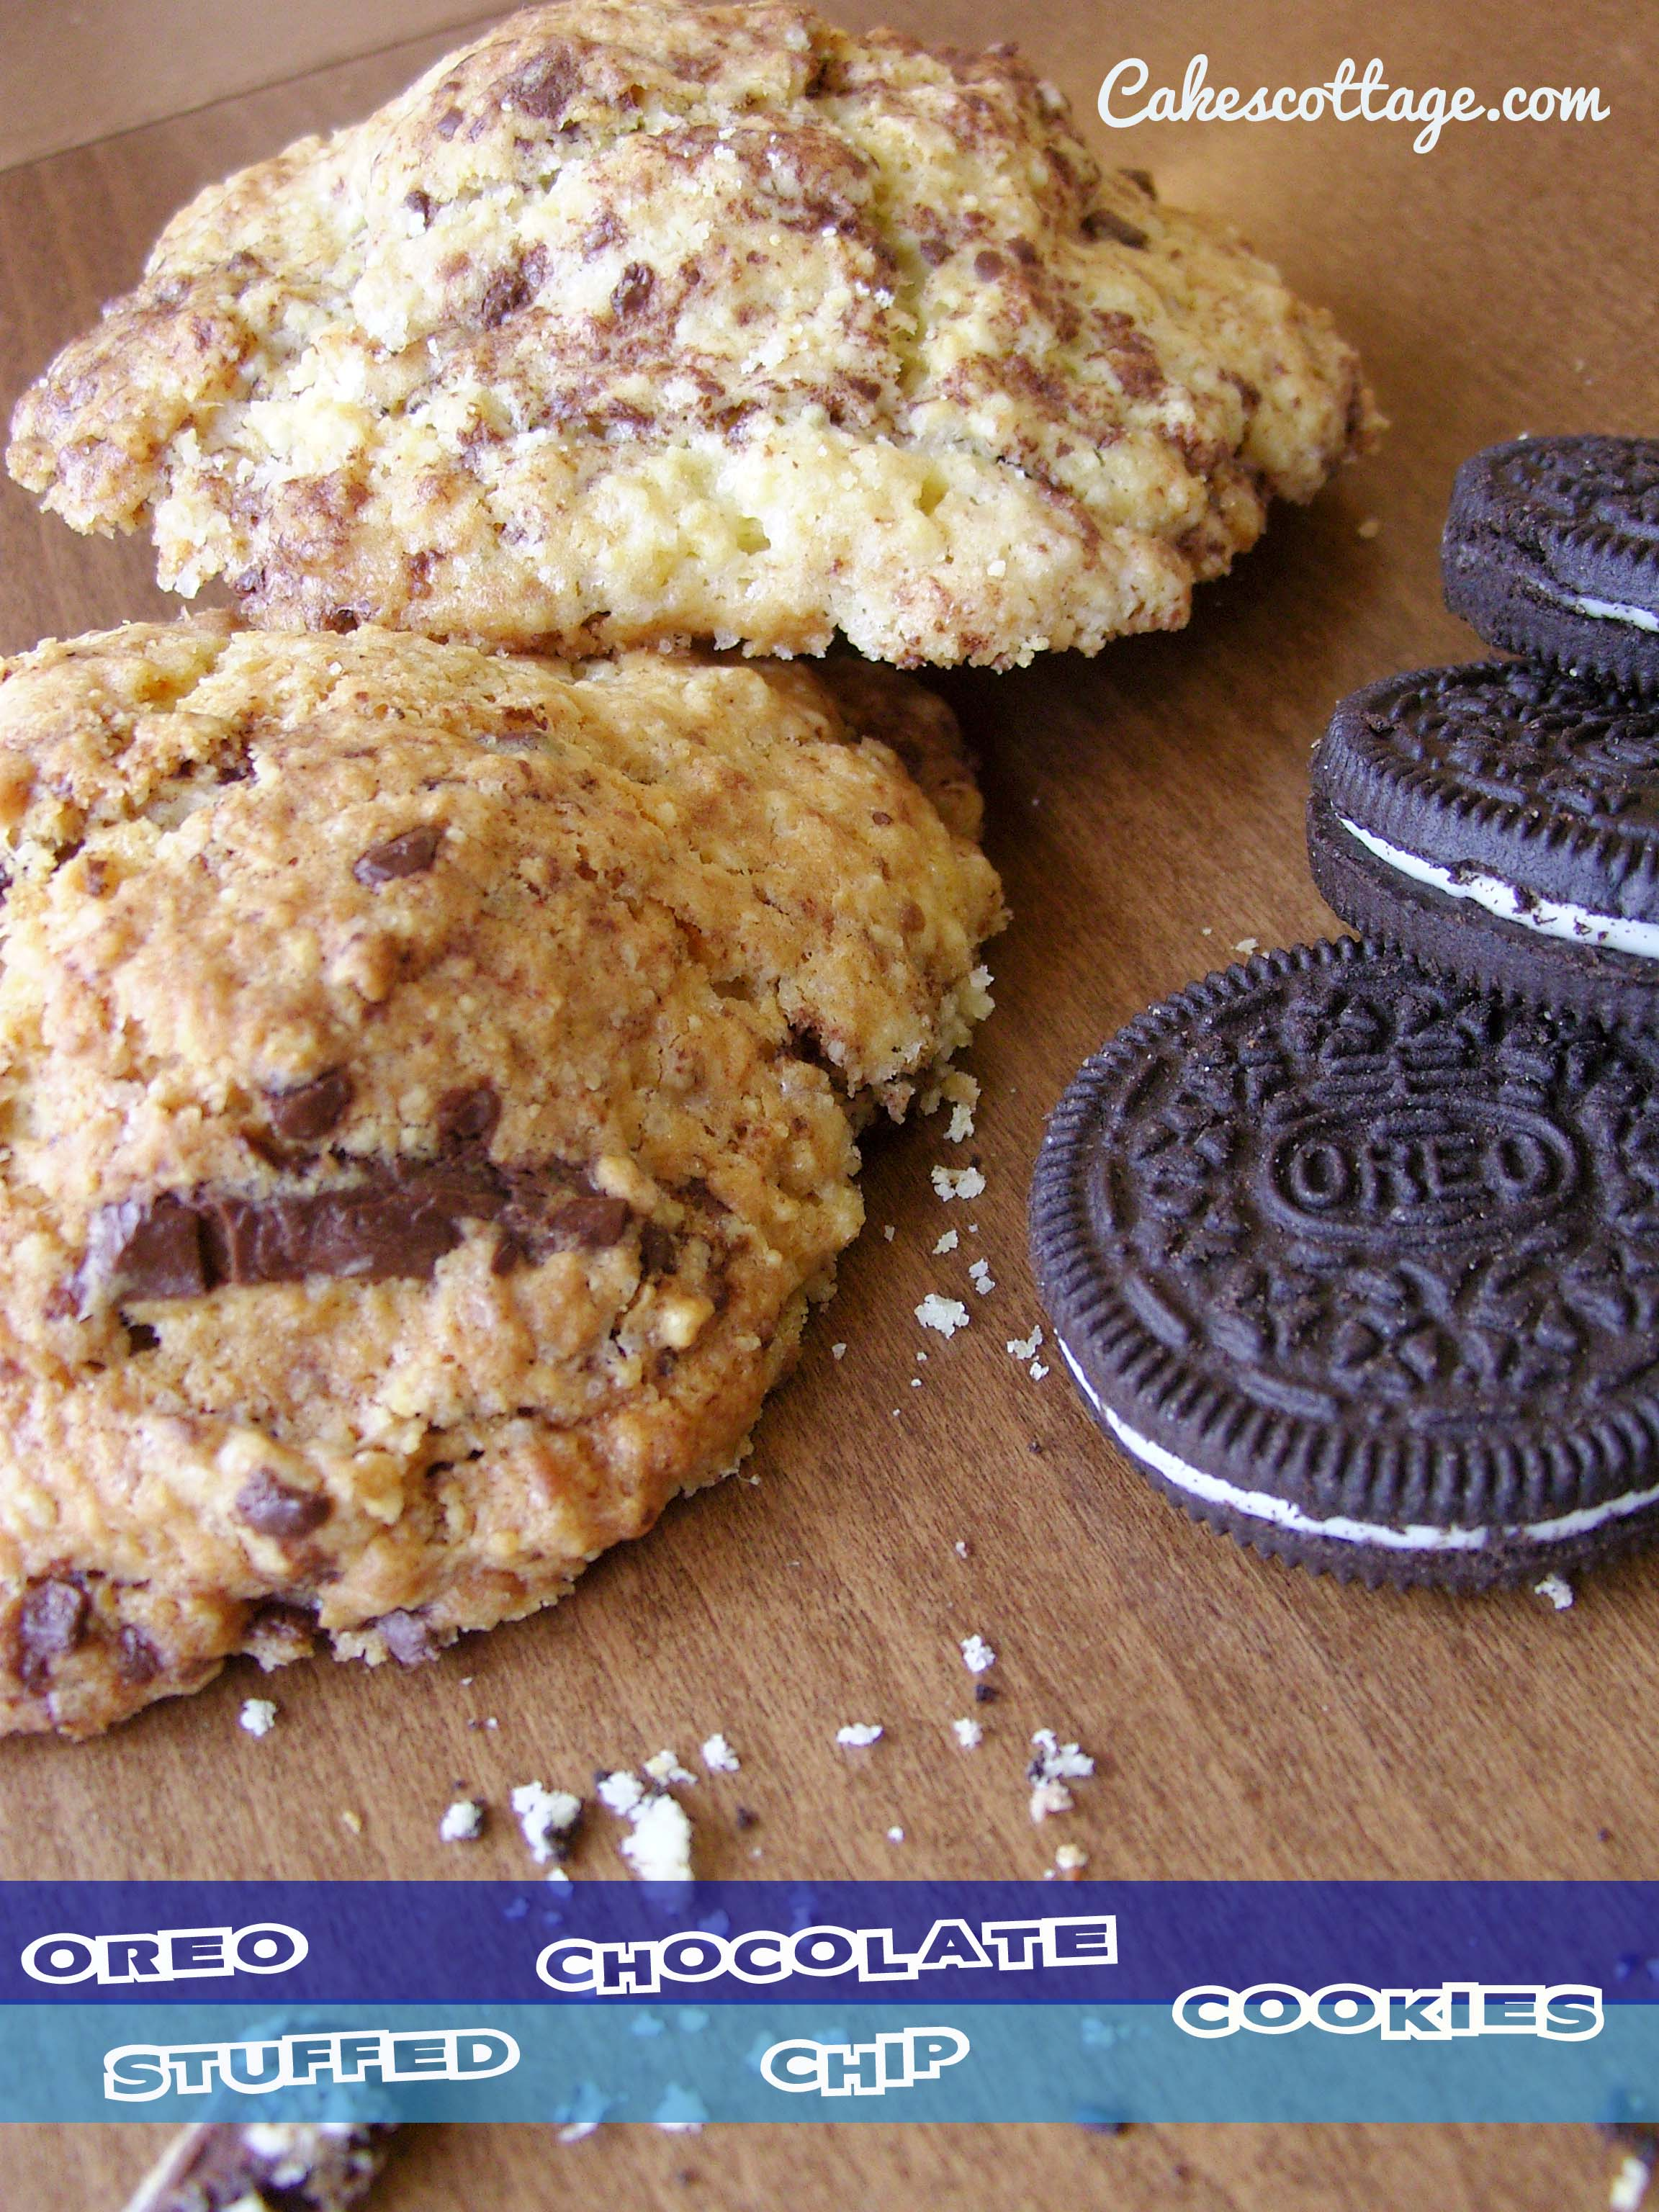 Oreo-Stuffed-Chocolate-Chip-Cookie